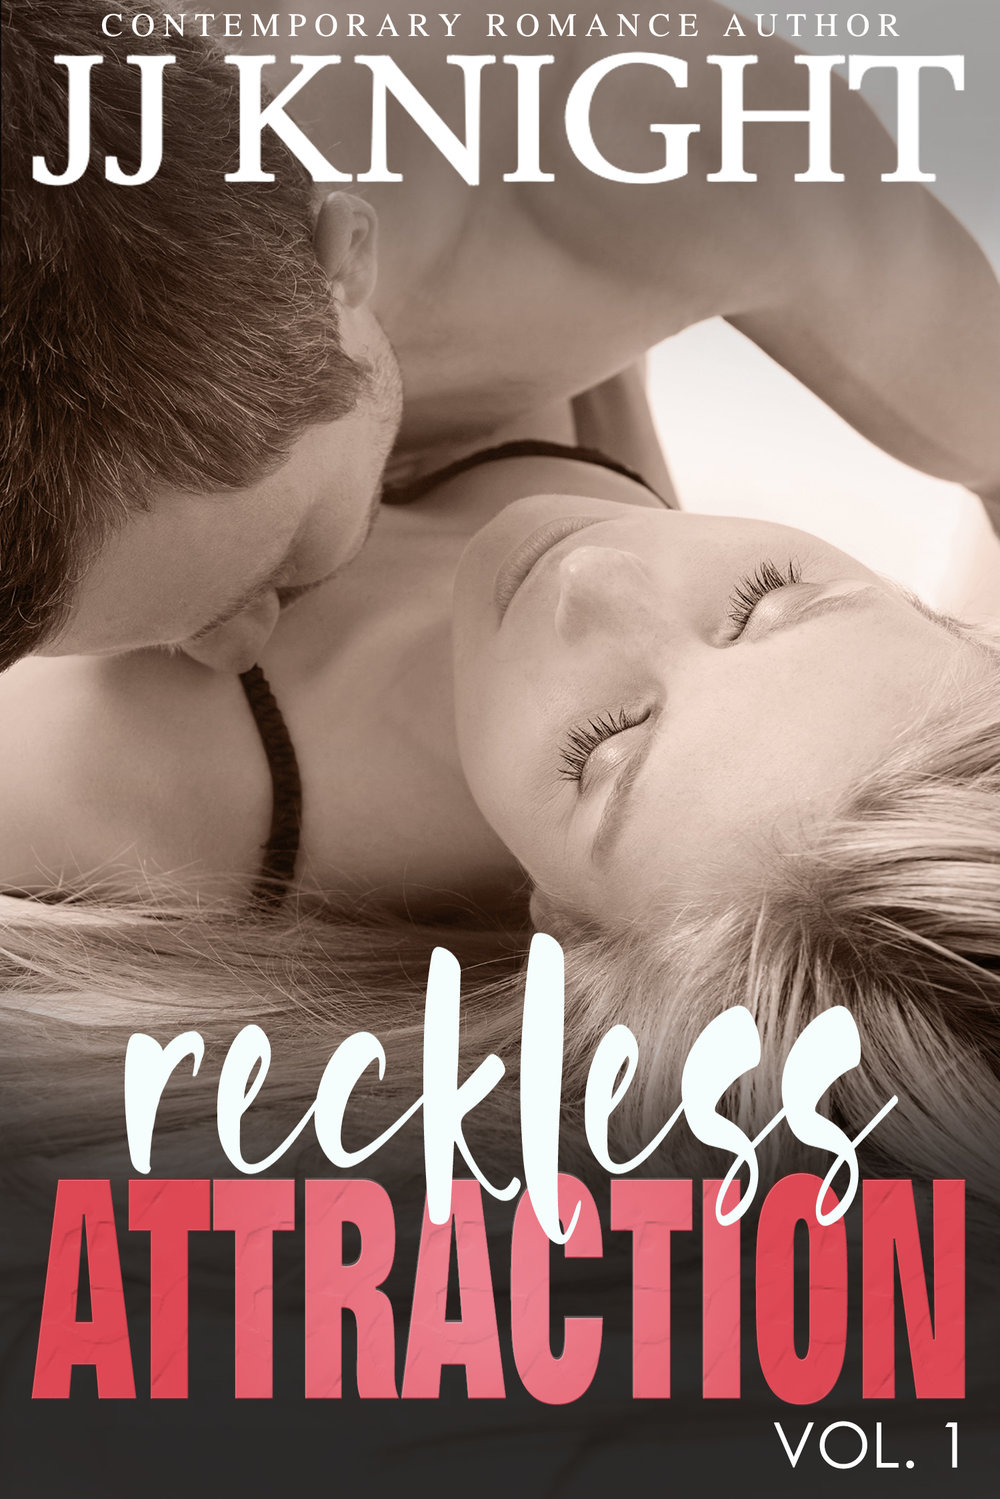 Reckless-Attraction-Cover-1.jpg